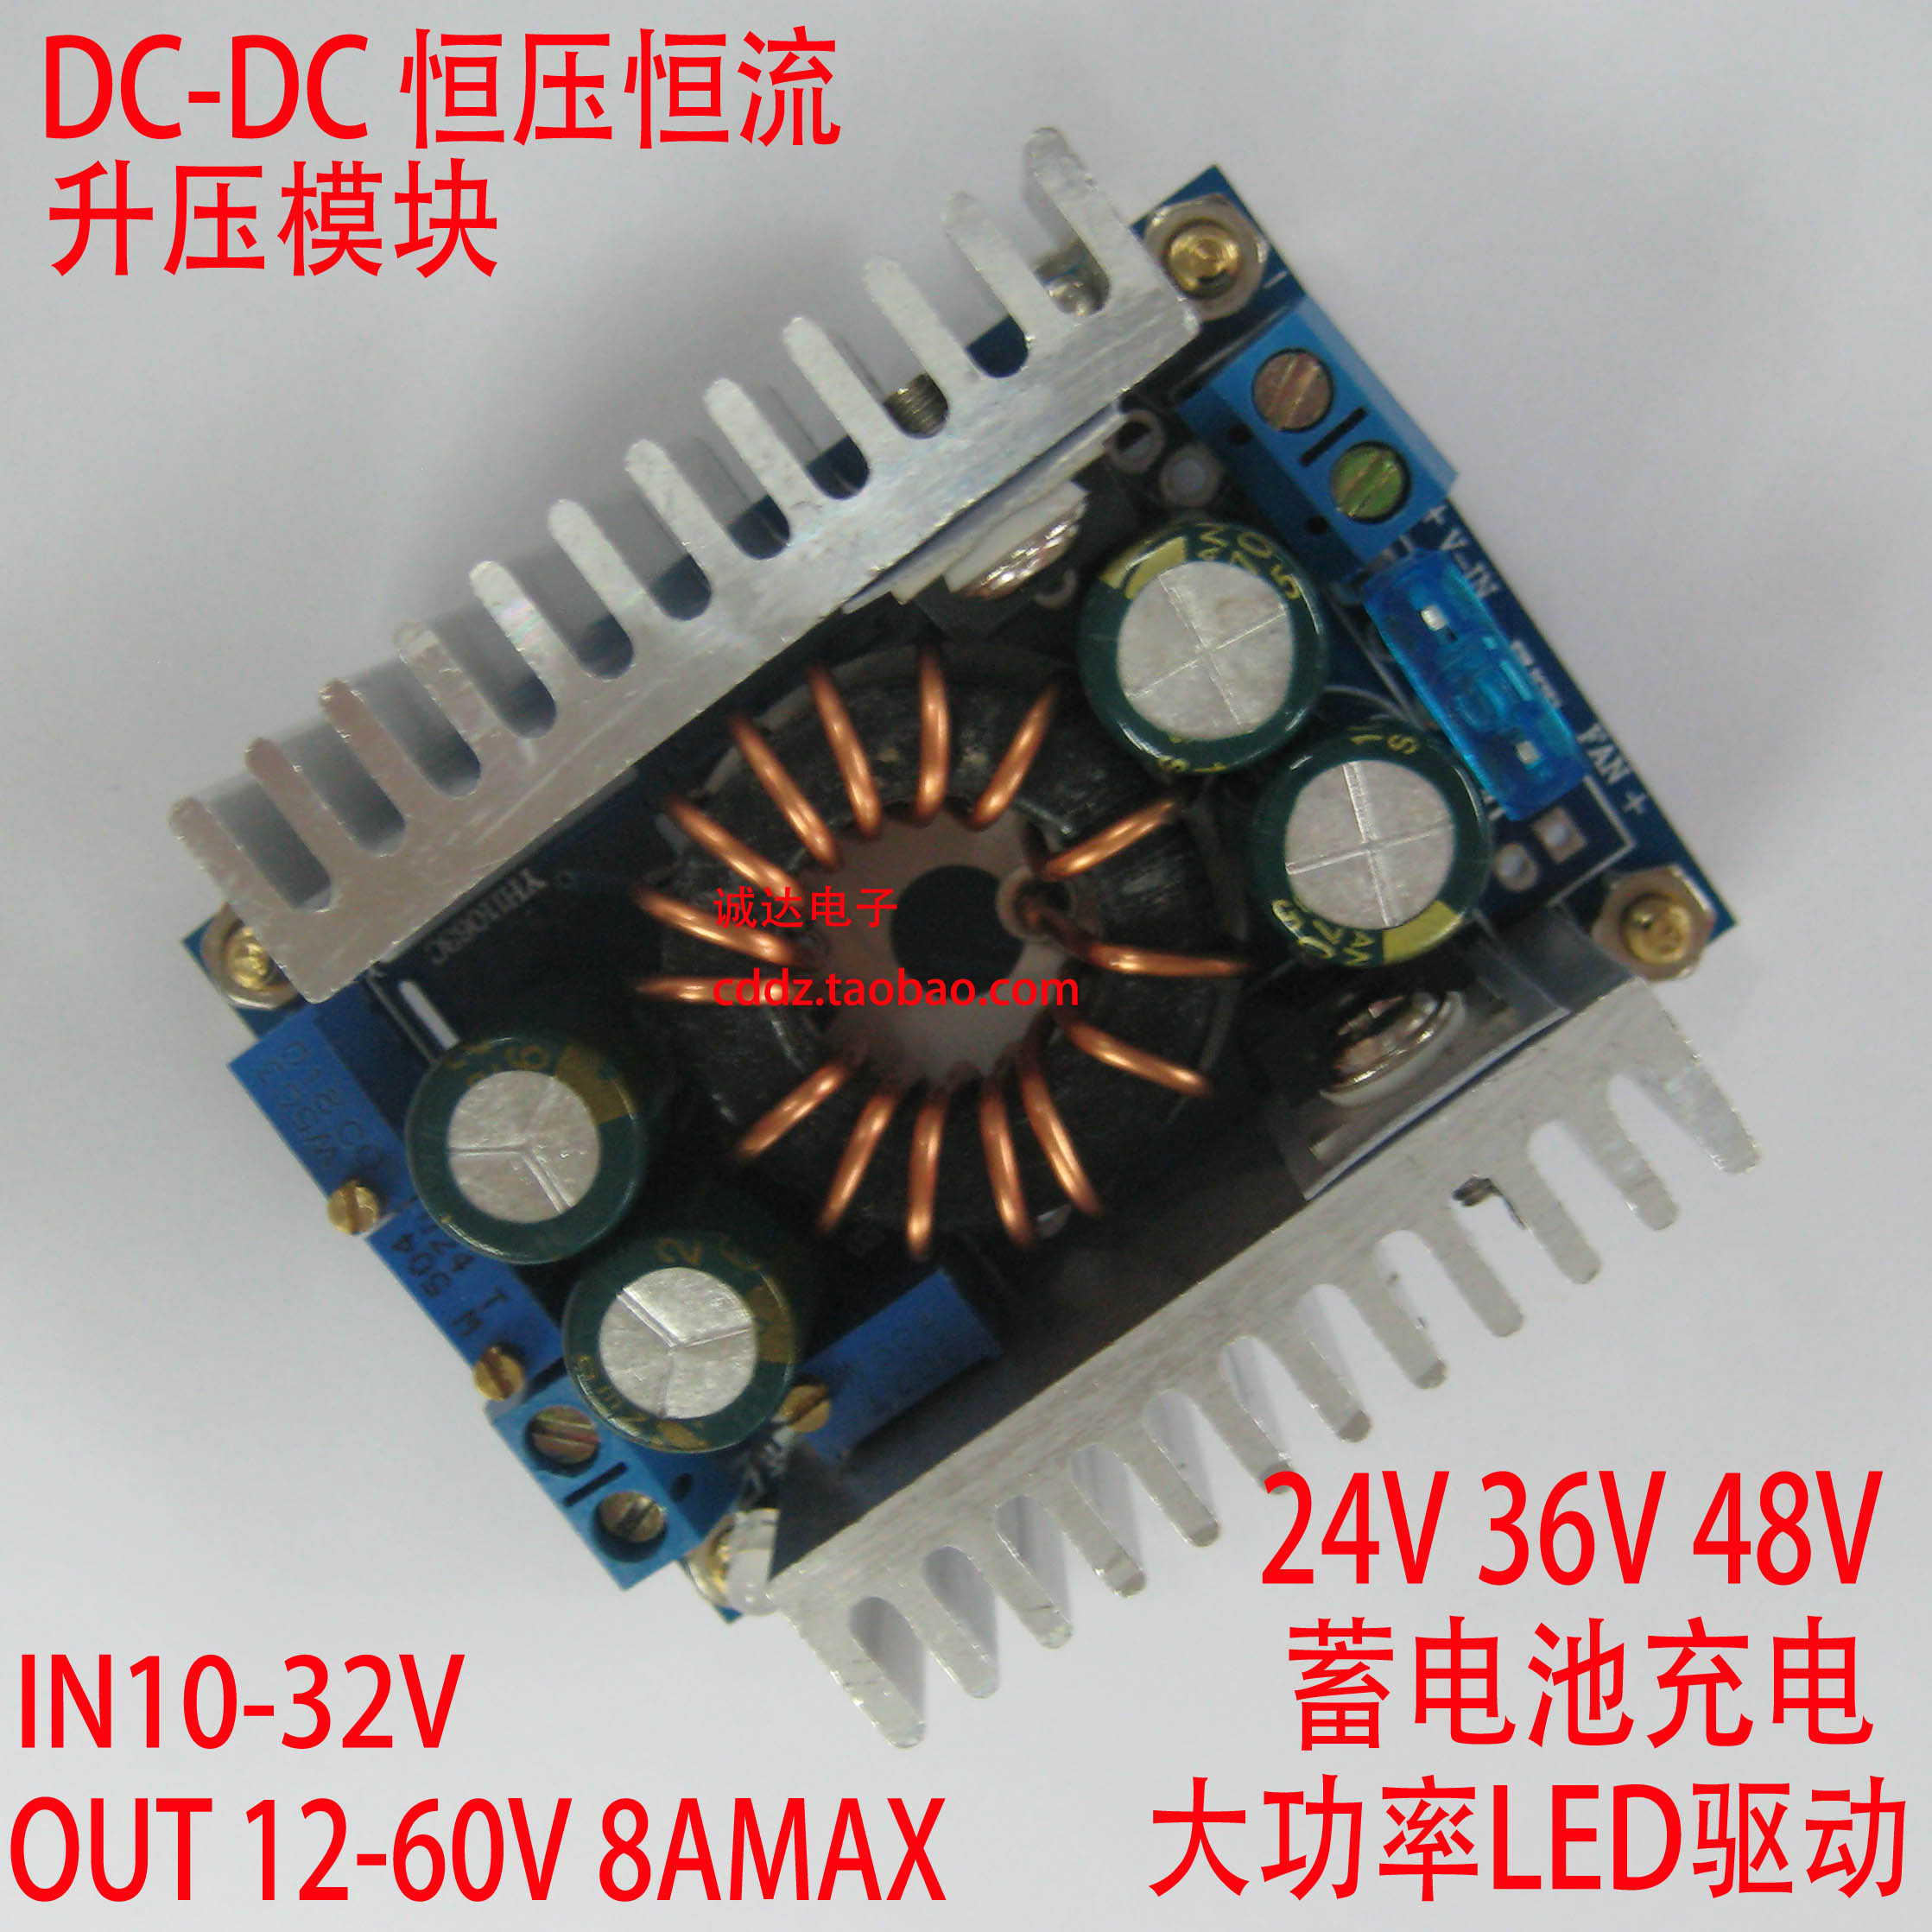 DC-DC adjustable step-up constant current 10-32 converter 12-60V solar voltage regulated LED power supply module dc dc automatic step up down boost buck converter module 5 32v to 1 25 20v 5a continuous adjustable output voltage